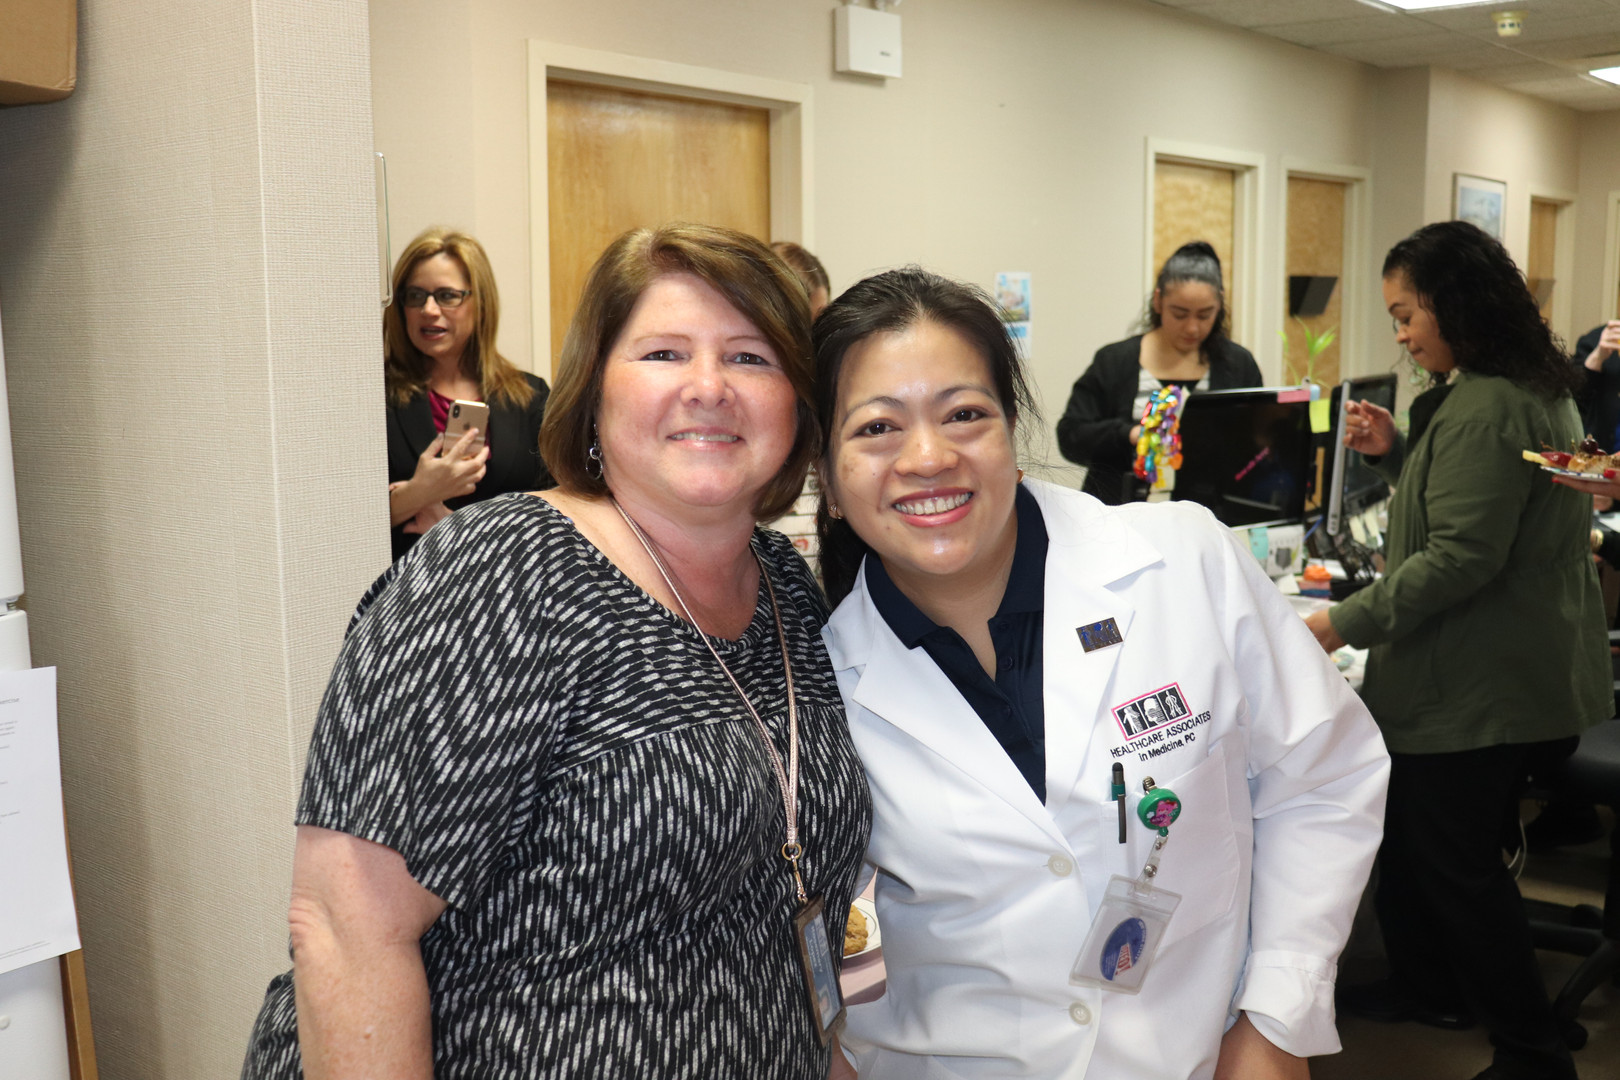 Clinical Supervisor of Neuroscience Rosie & Physical Therapist Bernadette